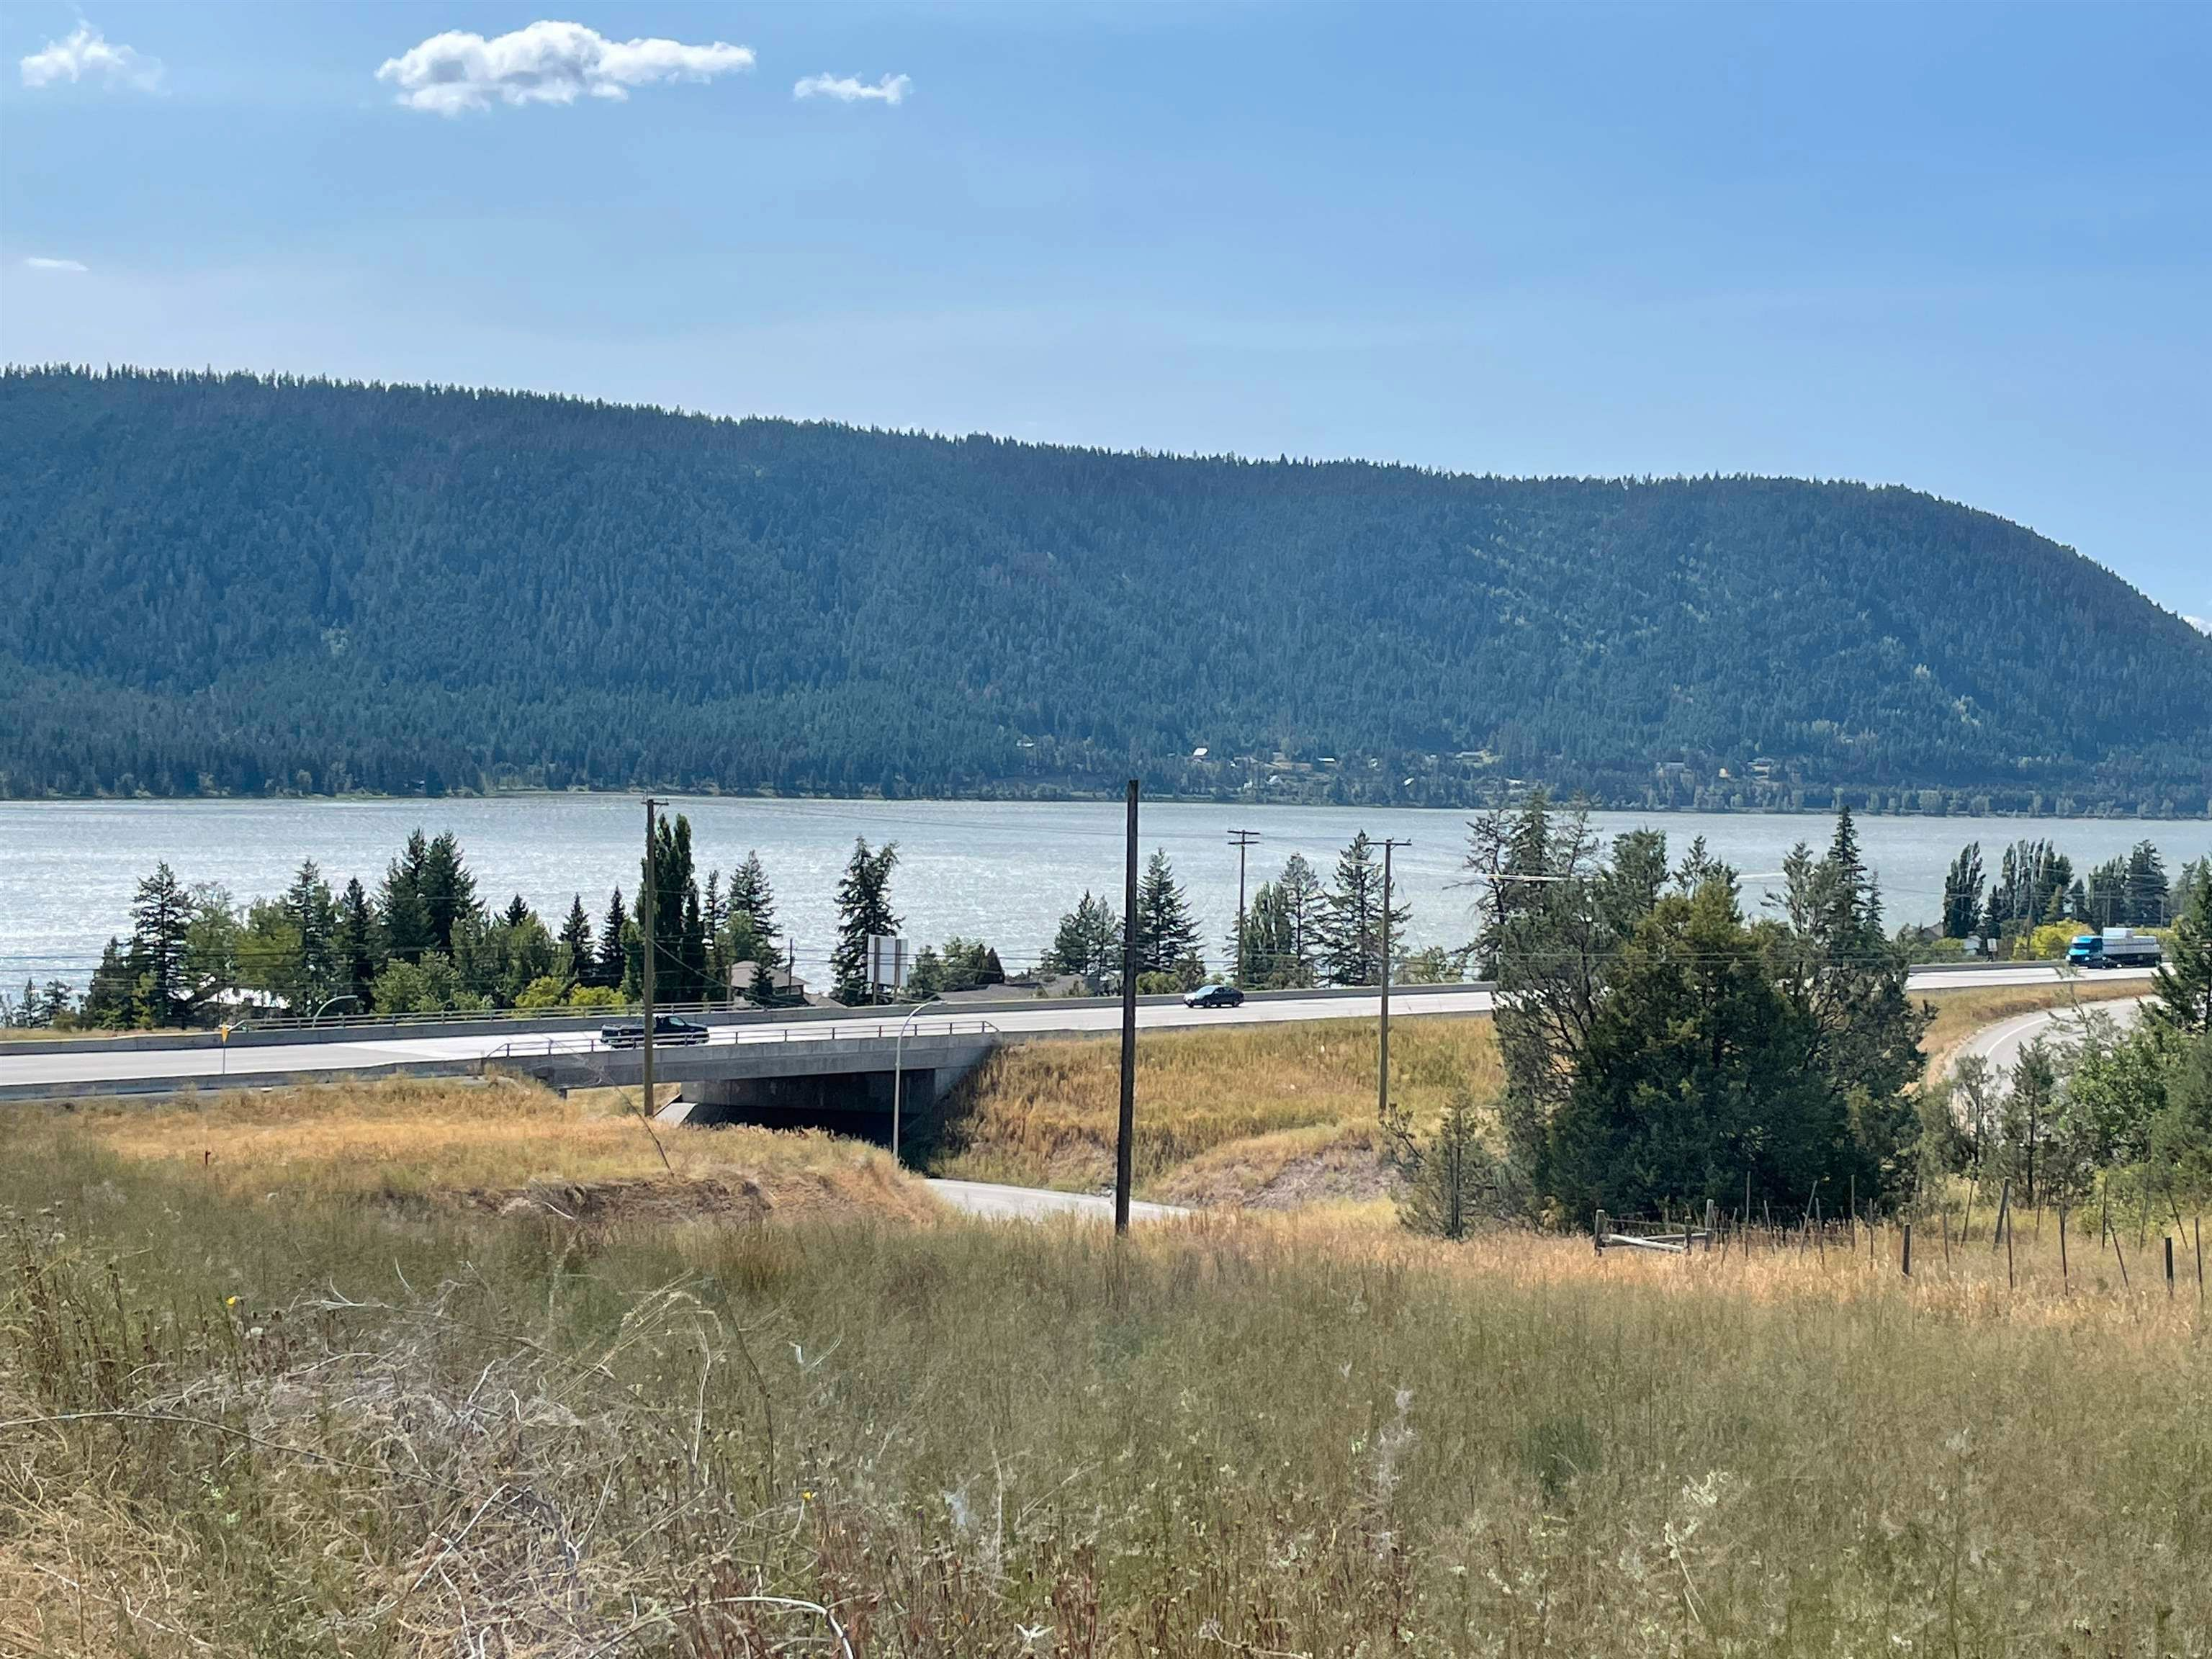 """Main Photo: 2519 GOPHER Drive in Williams Lake: Lakeside Rural Land for sale in """"Coyote Rock"""" (Williams Lake (Zone 27))  : MLS®# R2610286"""